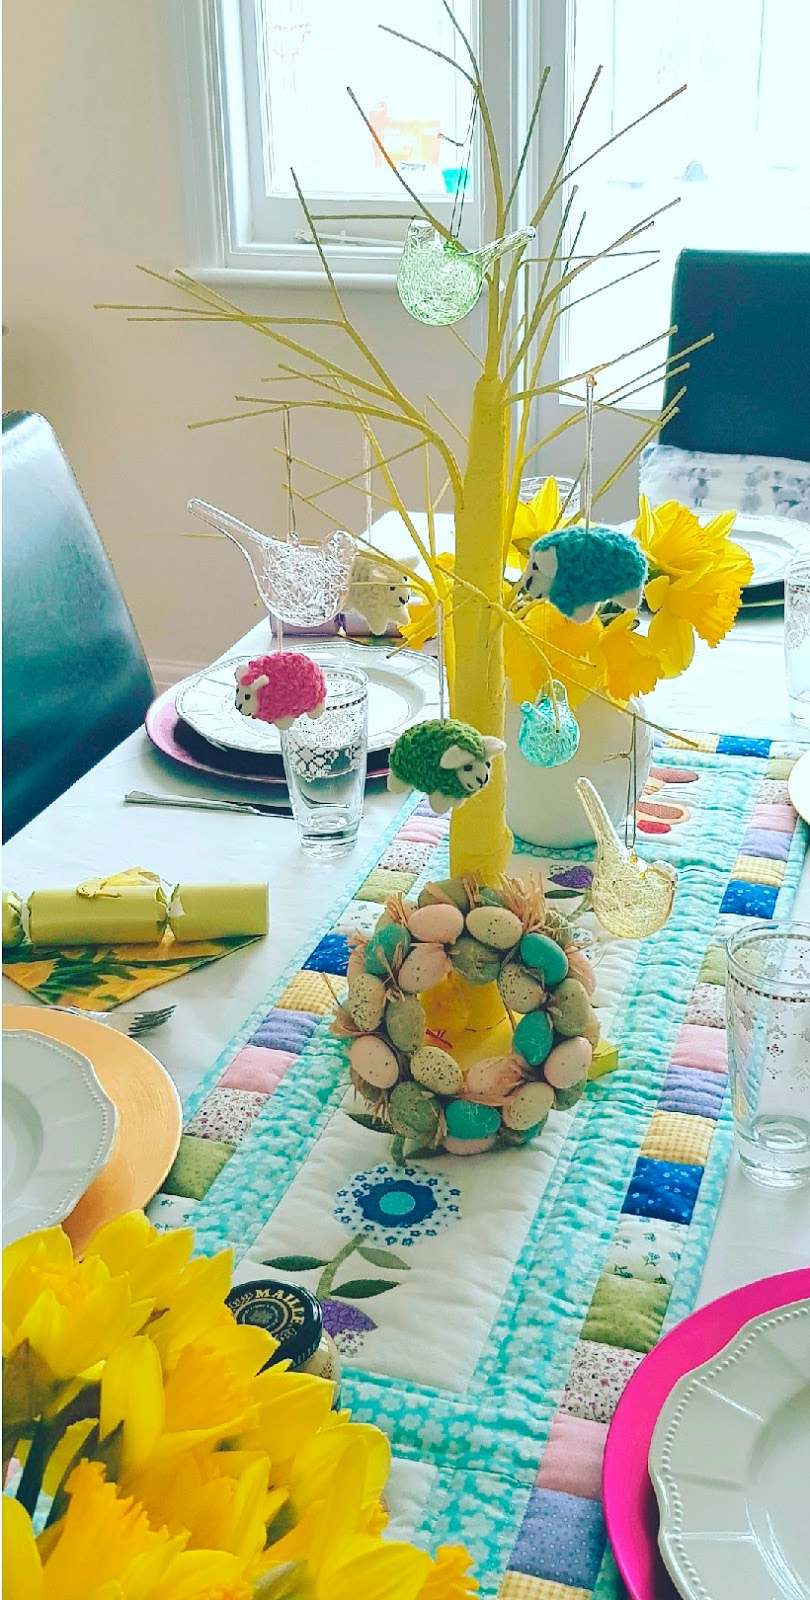 A table decorated for Easter in London, UK, April 2018. Includes an Easter wreath and an Easter tree decorated with glass birds and woolly sheep.